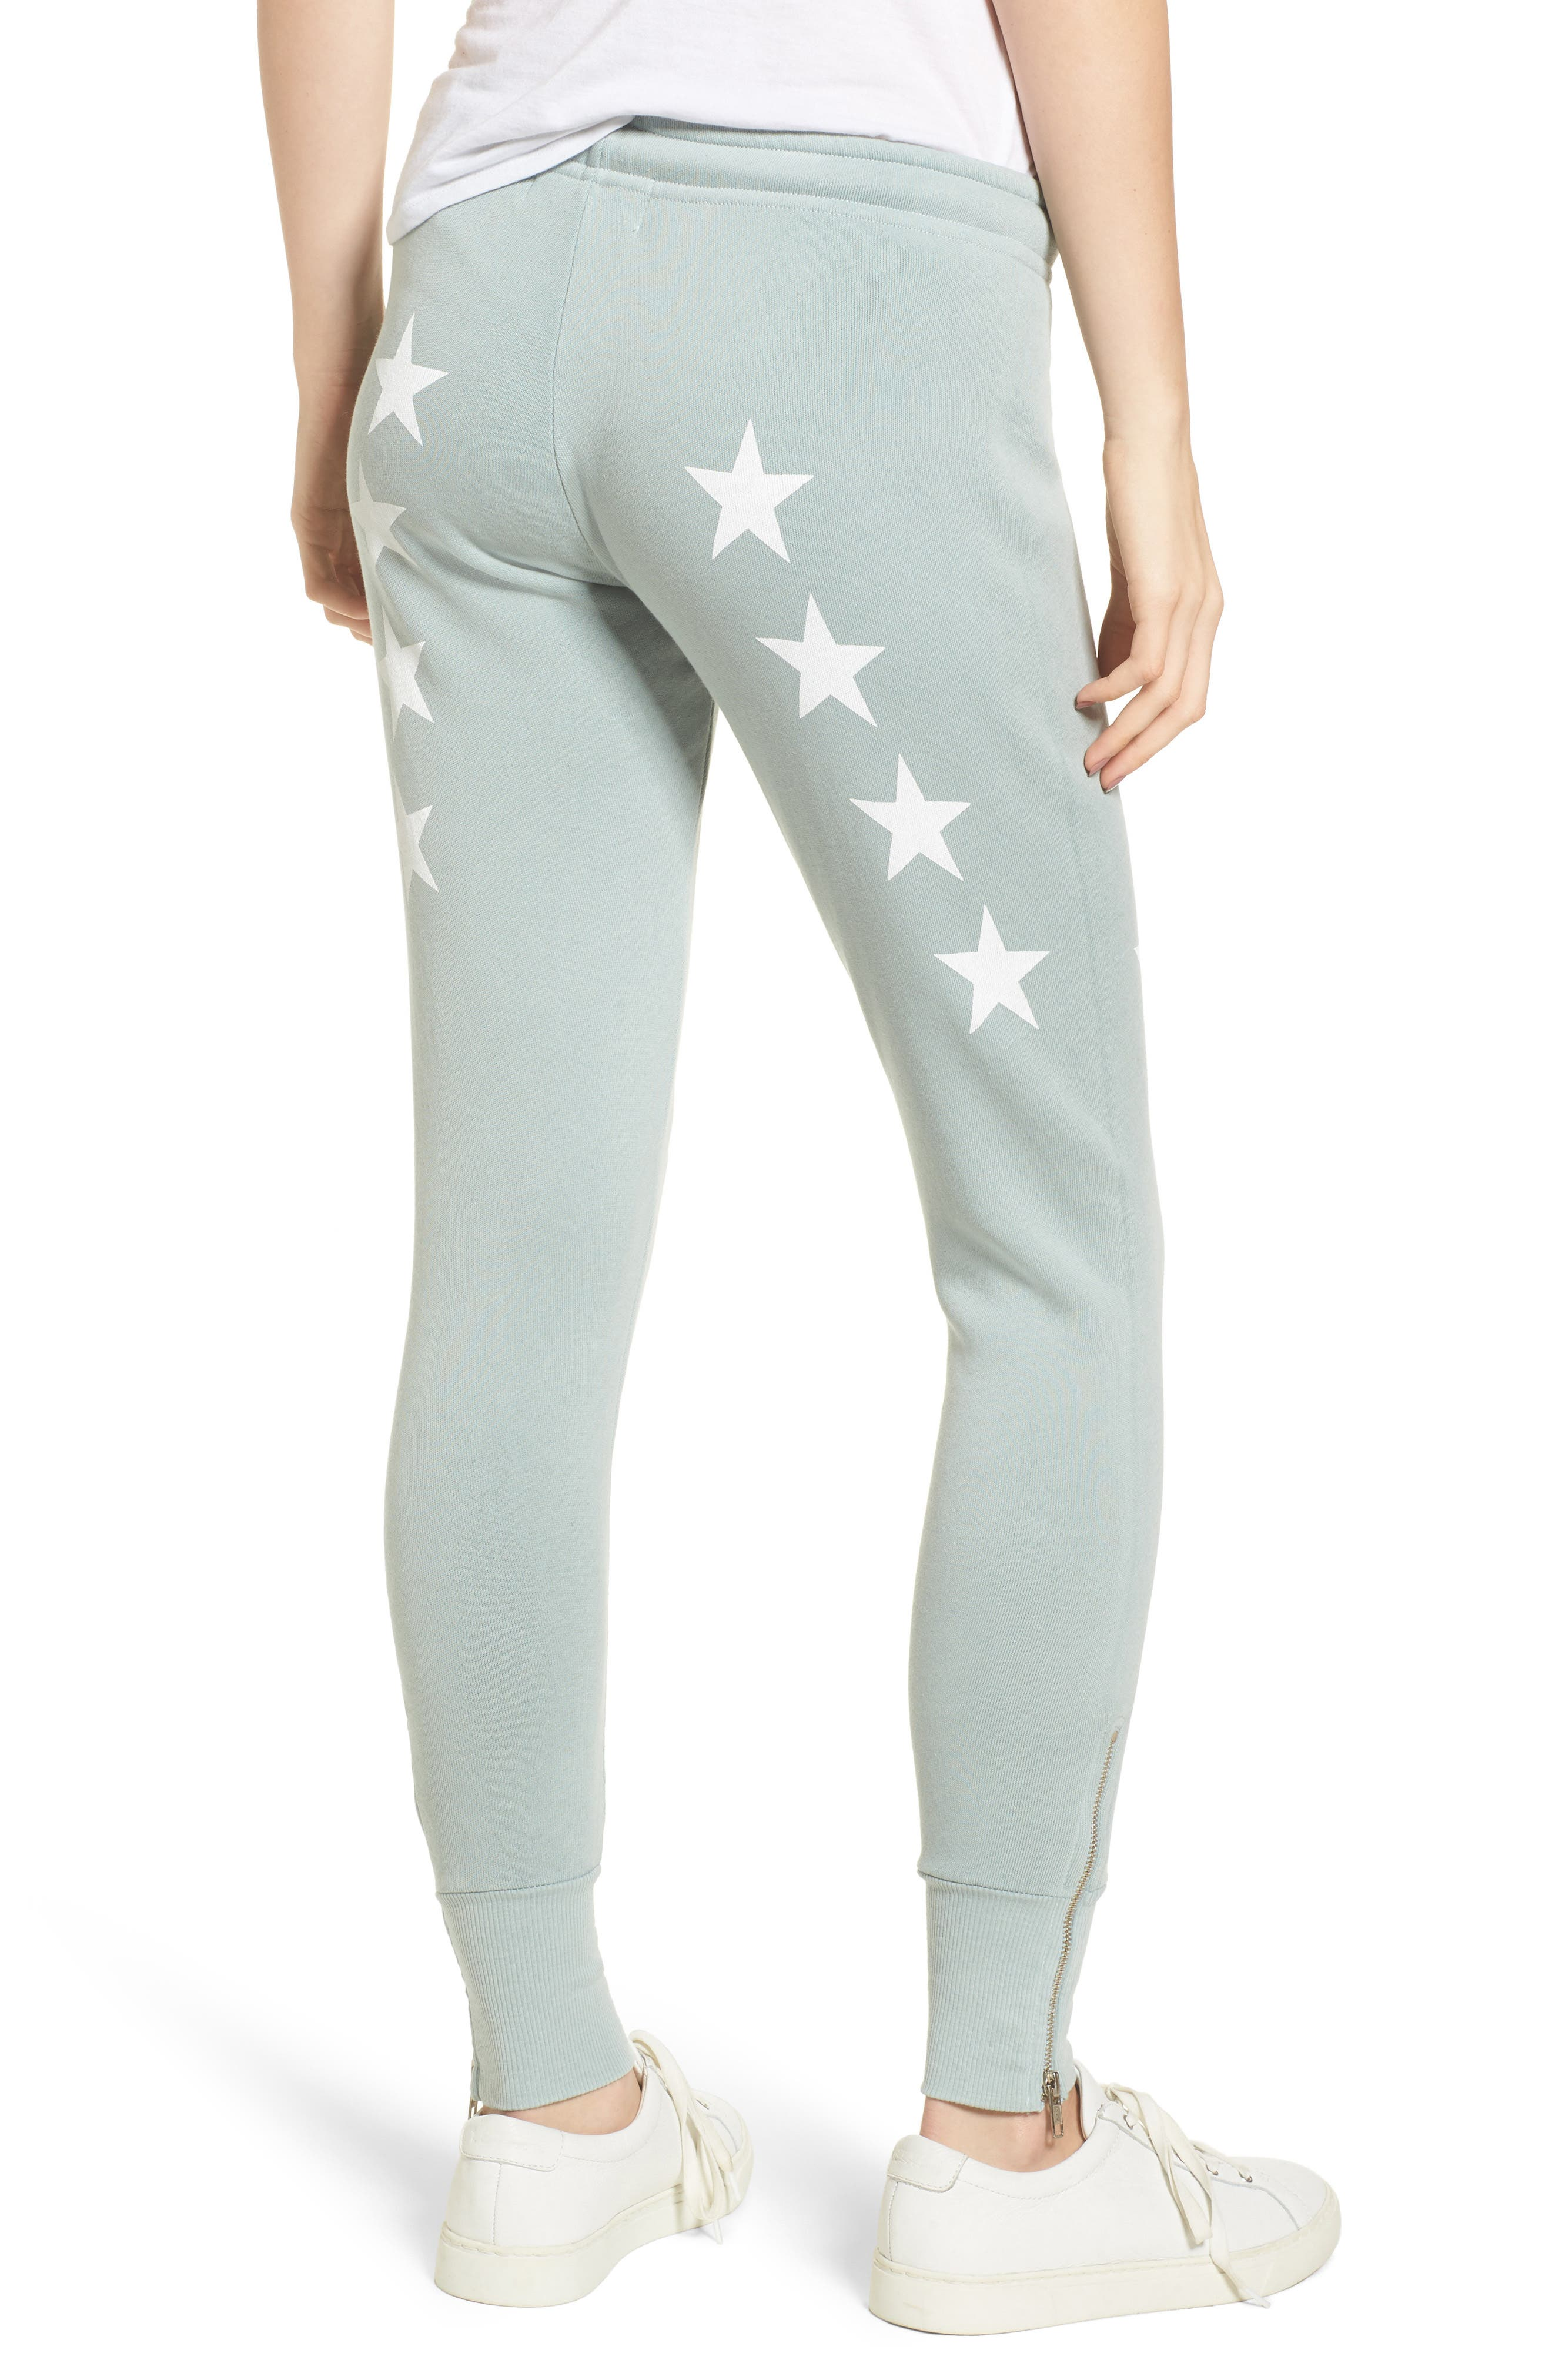 Cosmos Fame Jogger Pants,                             Alternate thumbnail 2, color,                             Cadet Blue